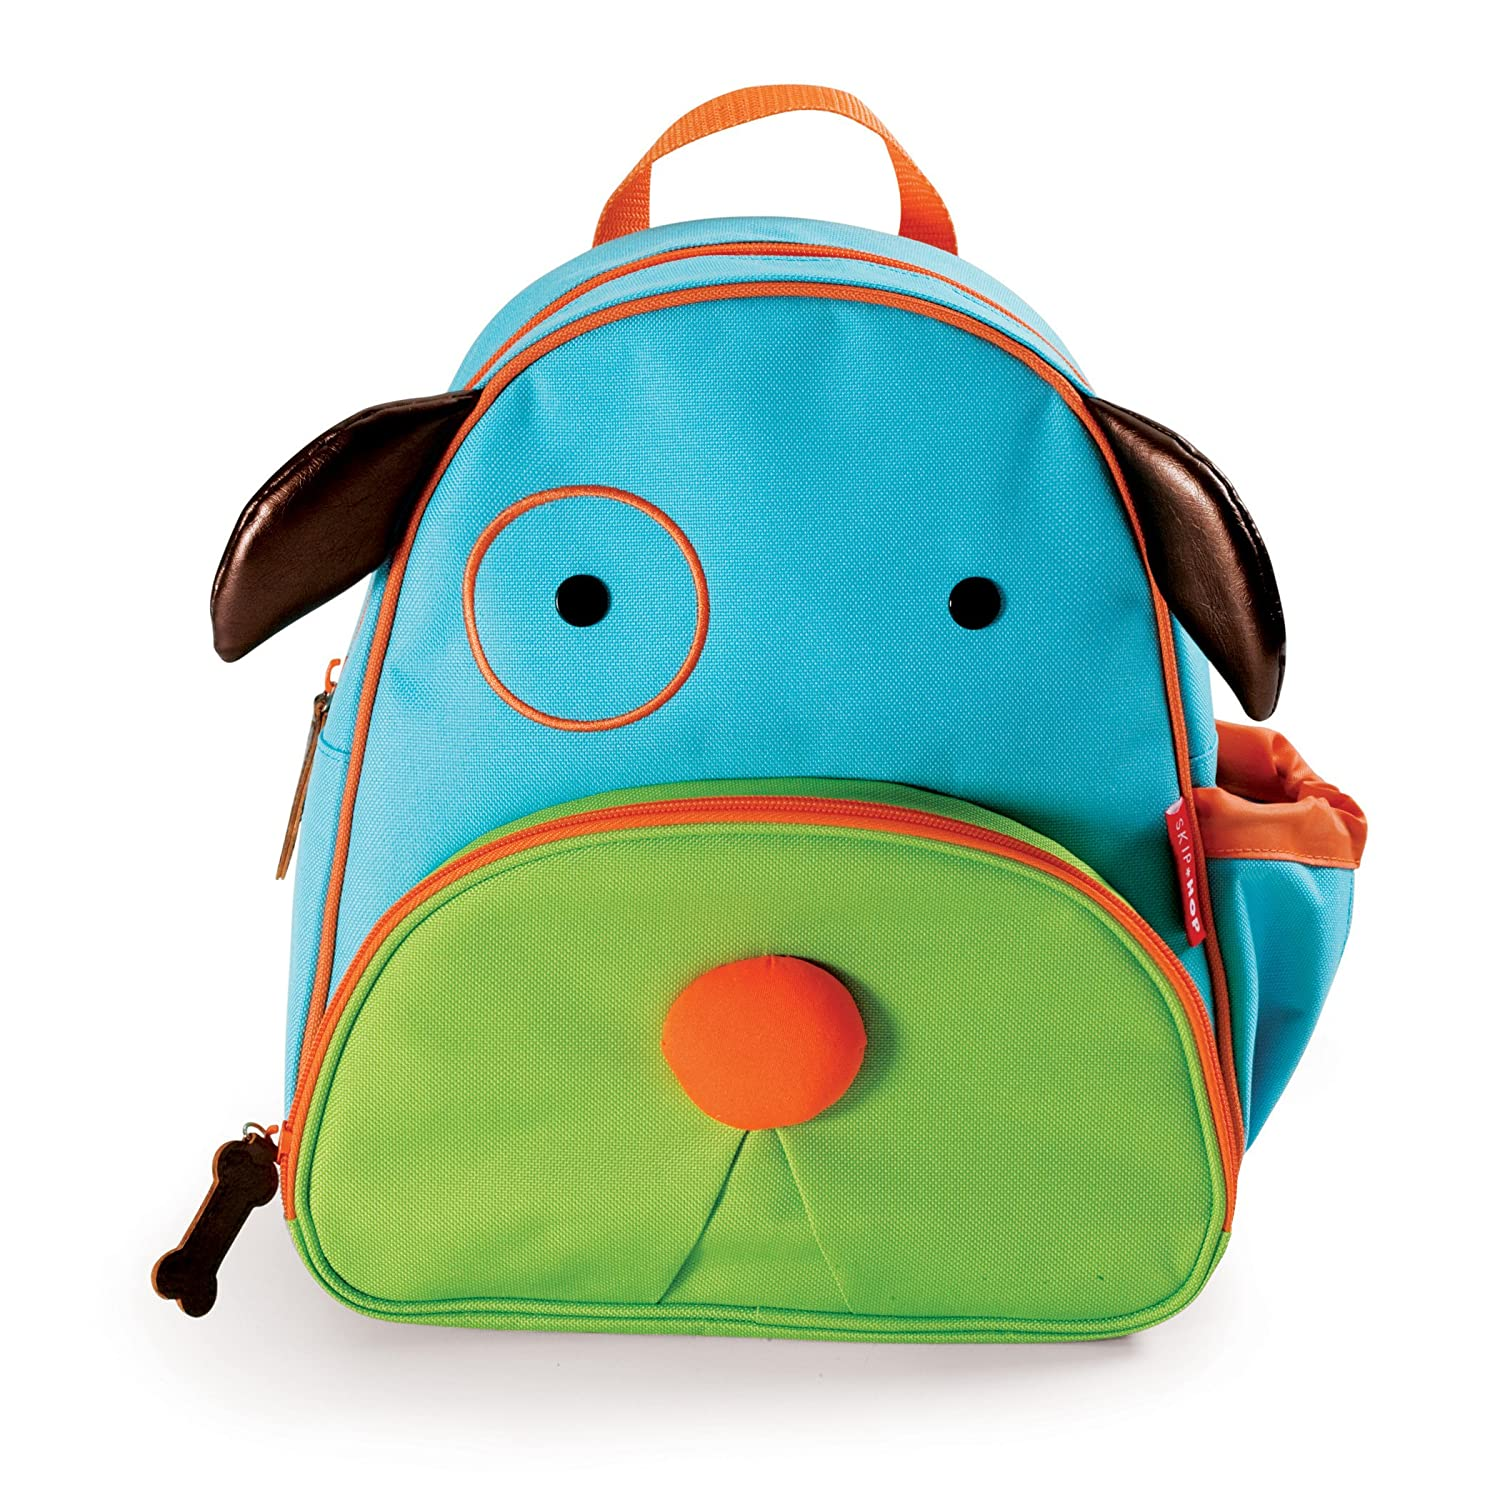 Purchase your next Little Boy bag from Zazzle. Check out our backpacks, clutches, & more or create your own!